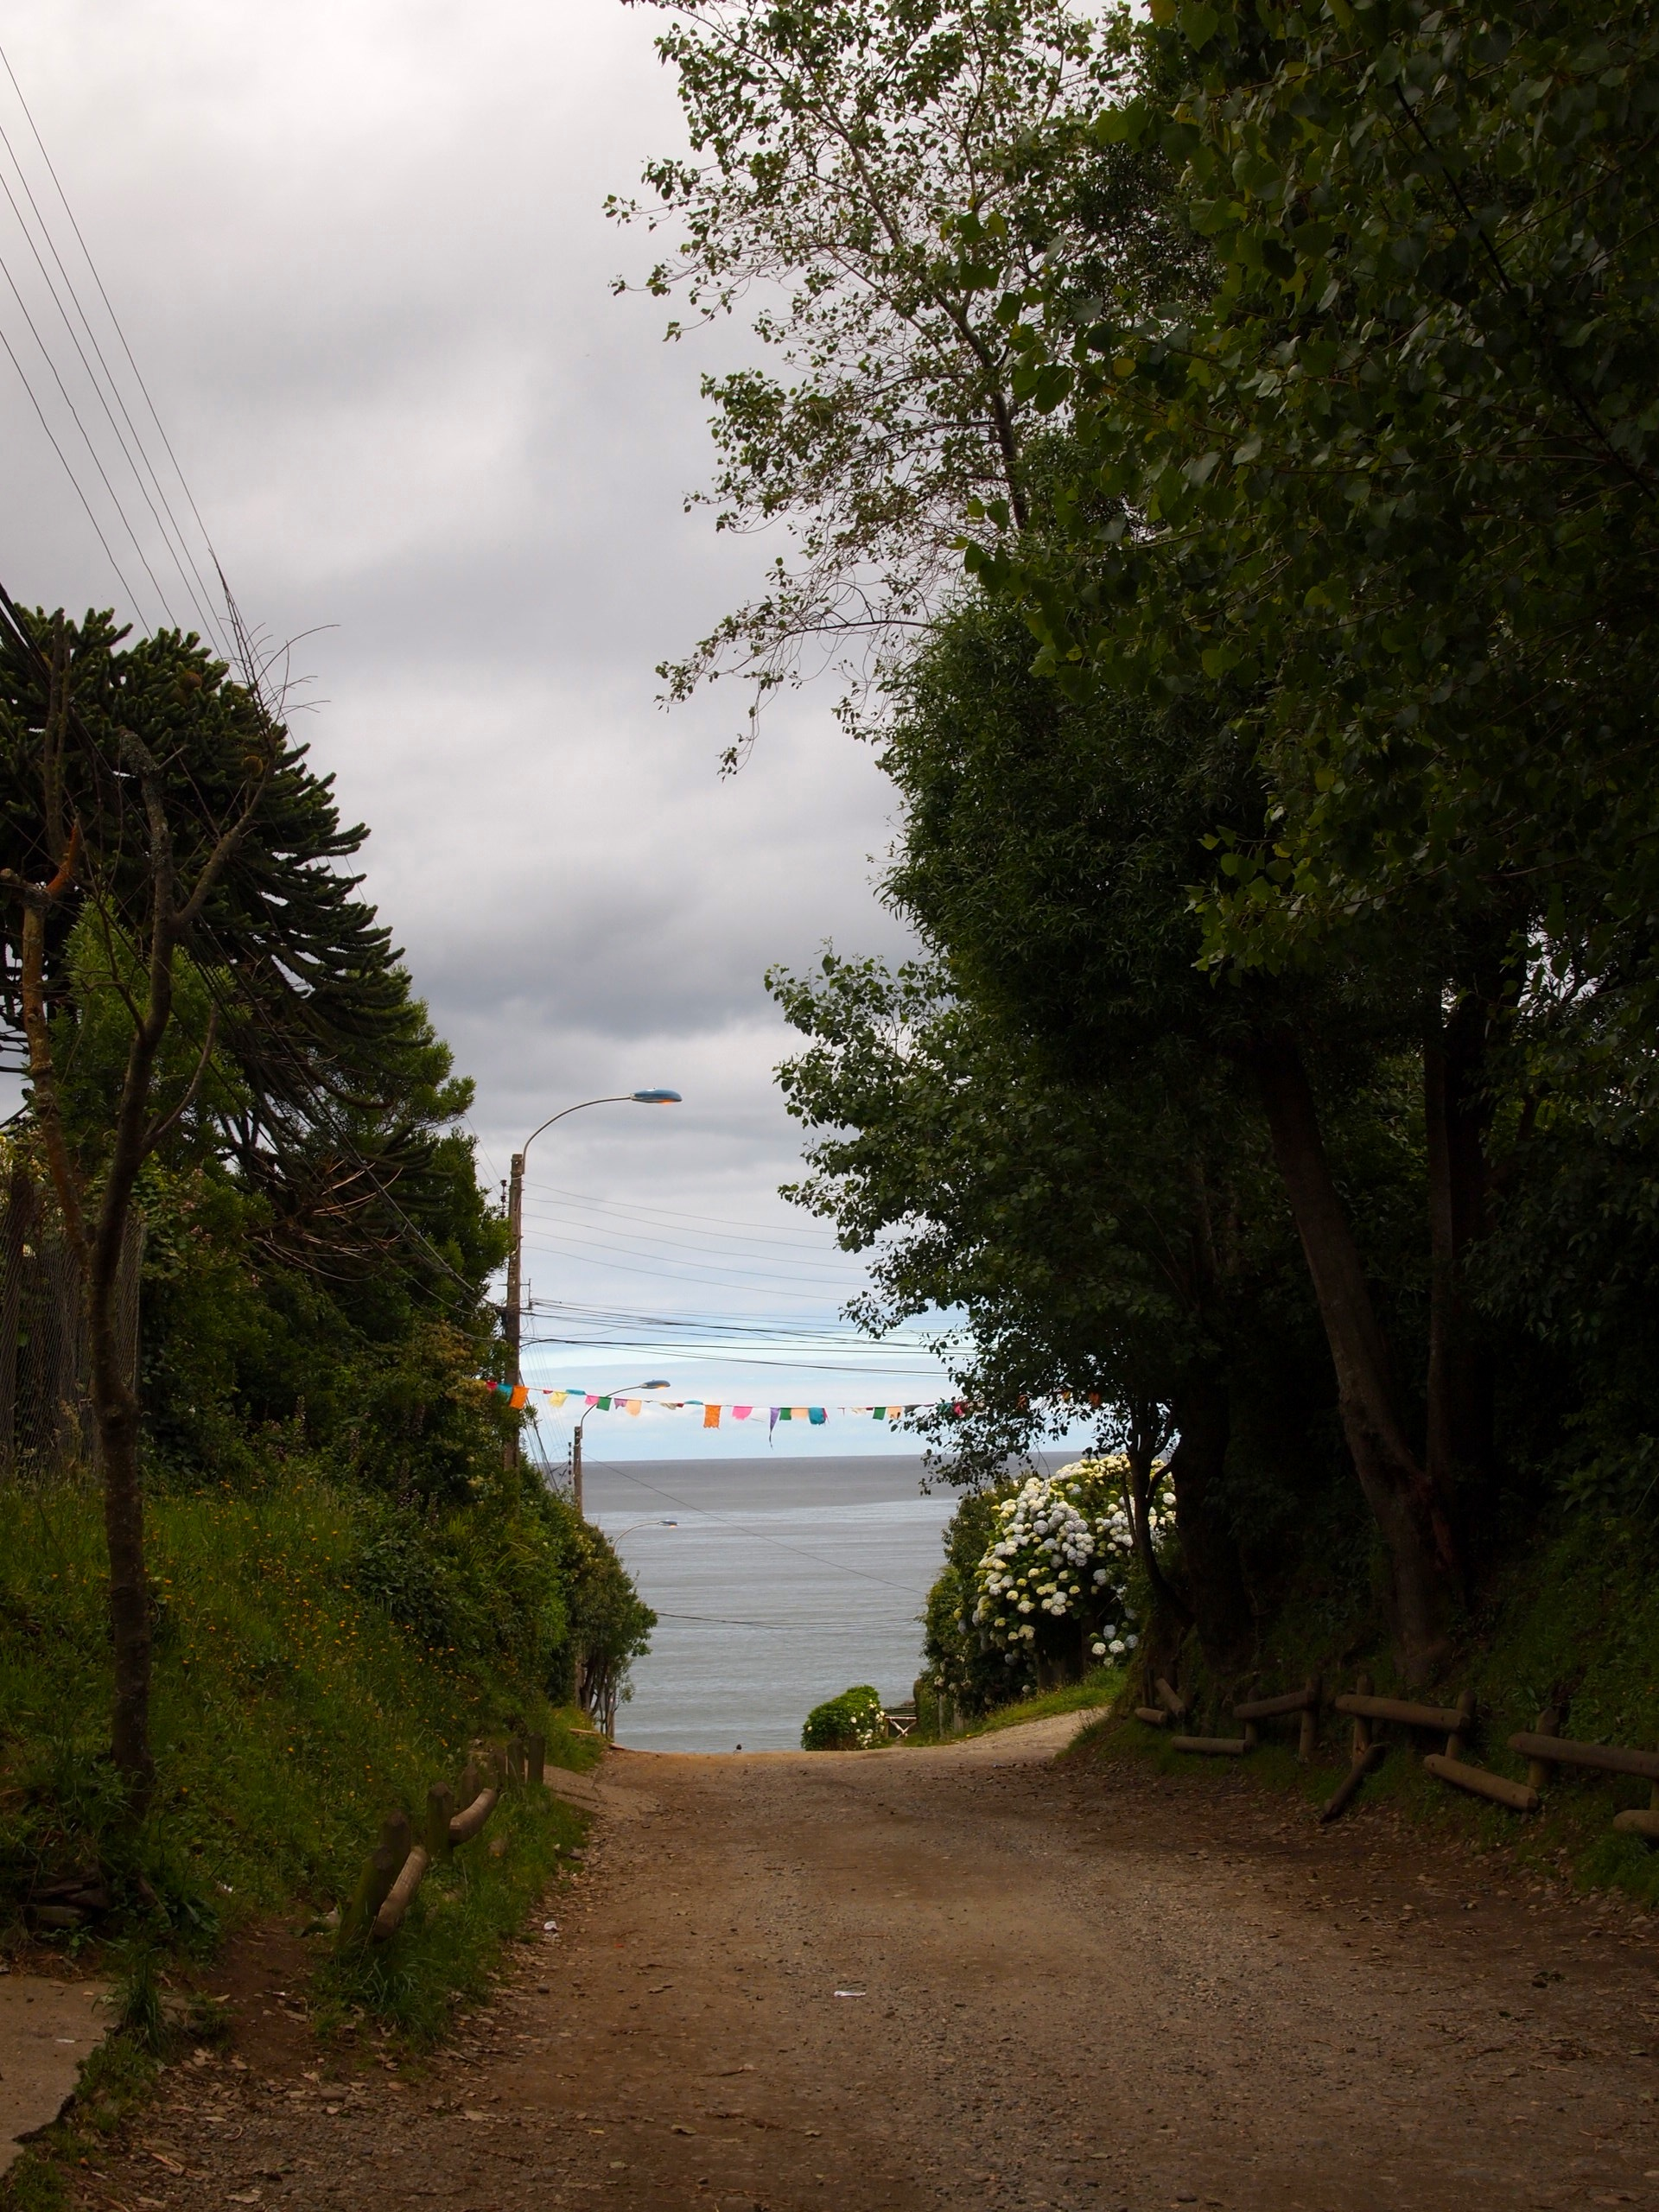 Wandering through the ocean and bay-side towns near Valdivia